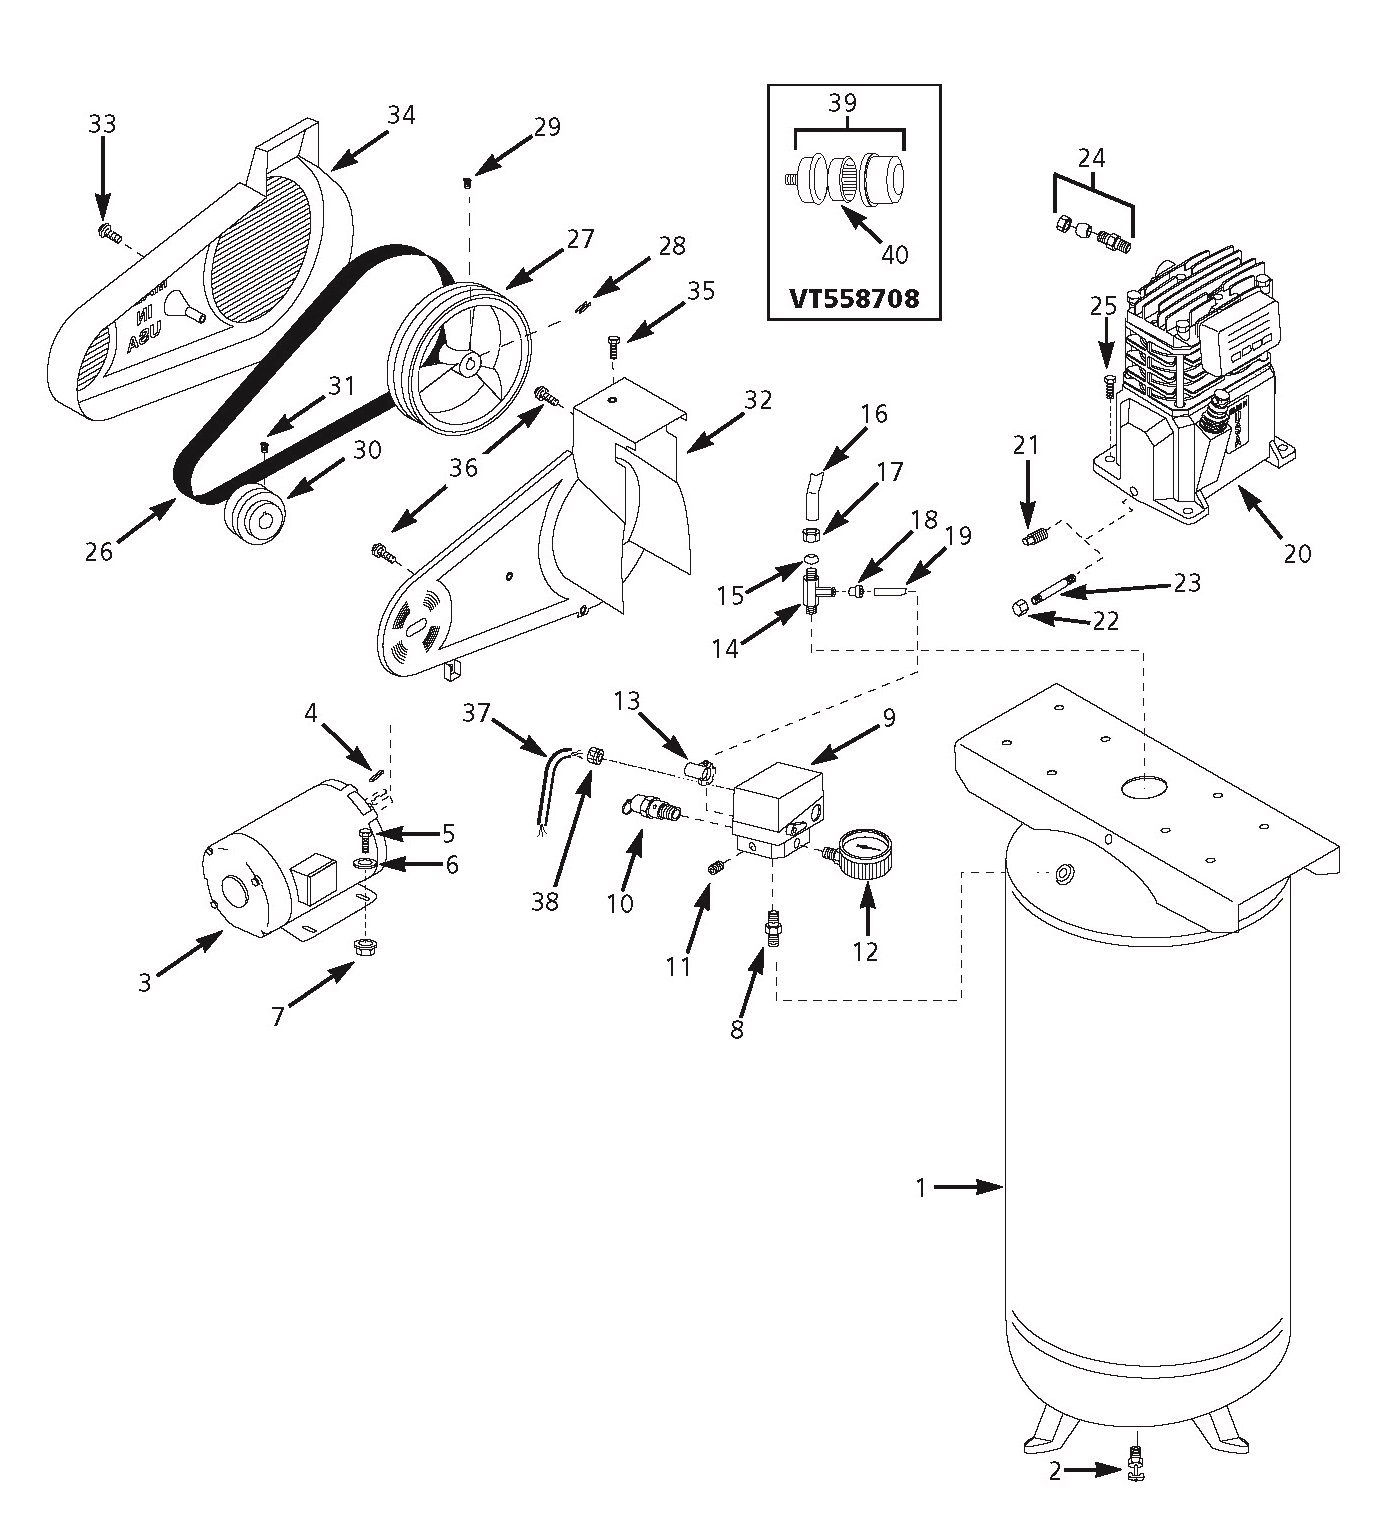 For Campbell Hausfeld Vt619501aj Wiring Diagram Opinions About Air Compressor Vt627602 Parts Rh Mastertoolrepair Com List Airless Paint Sprayer